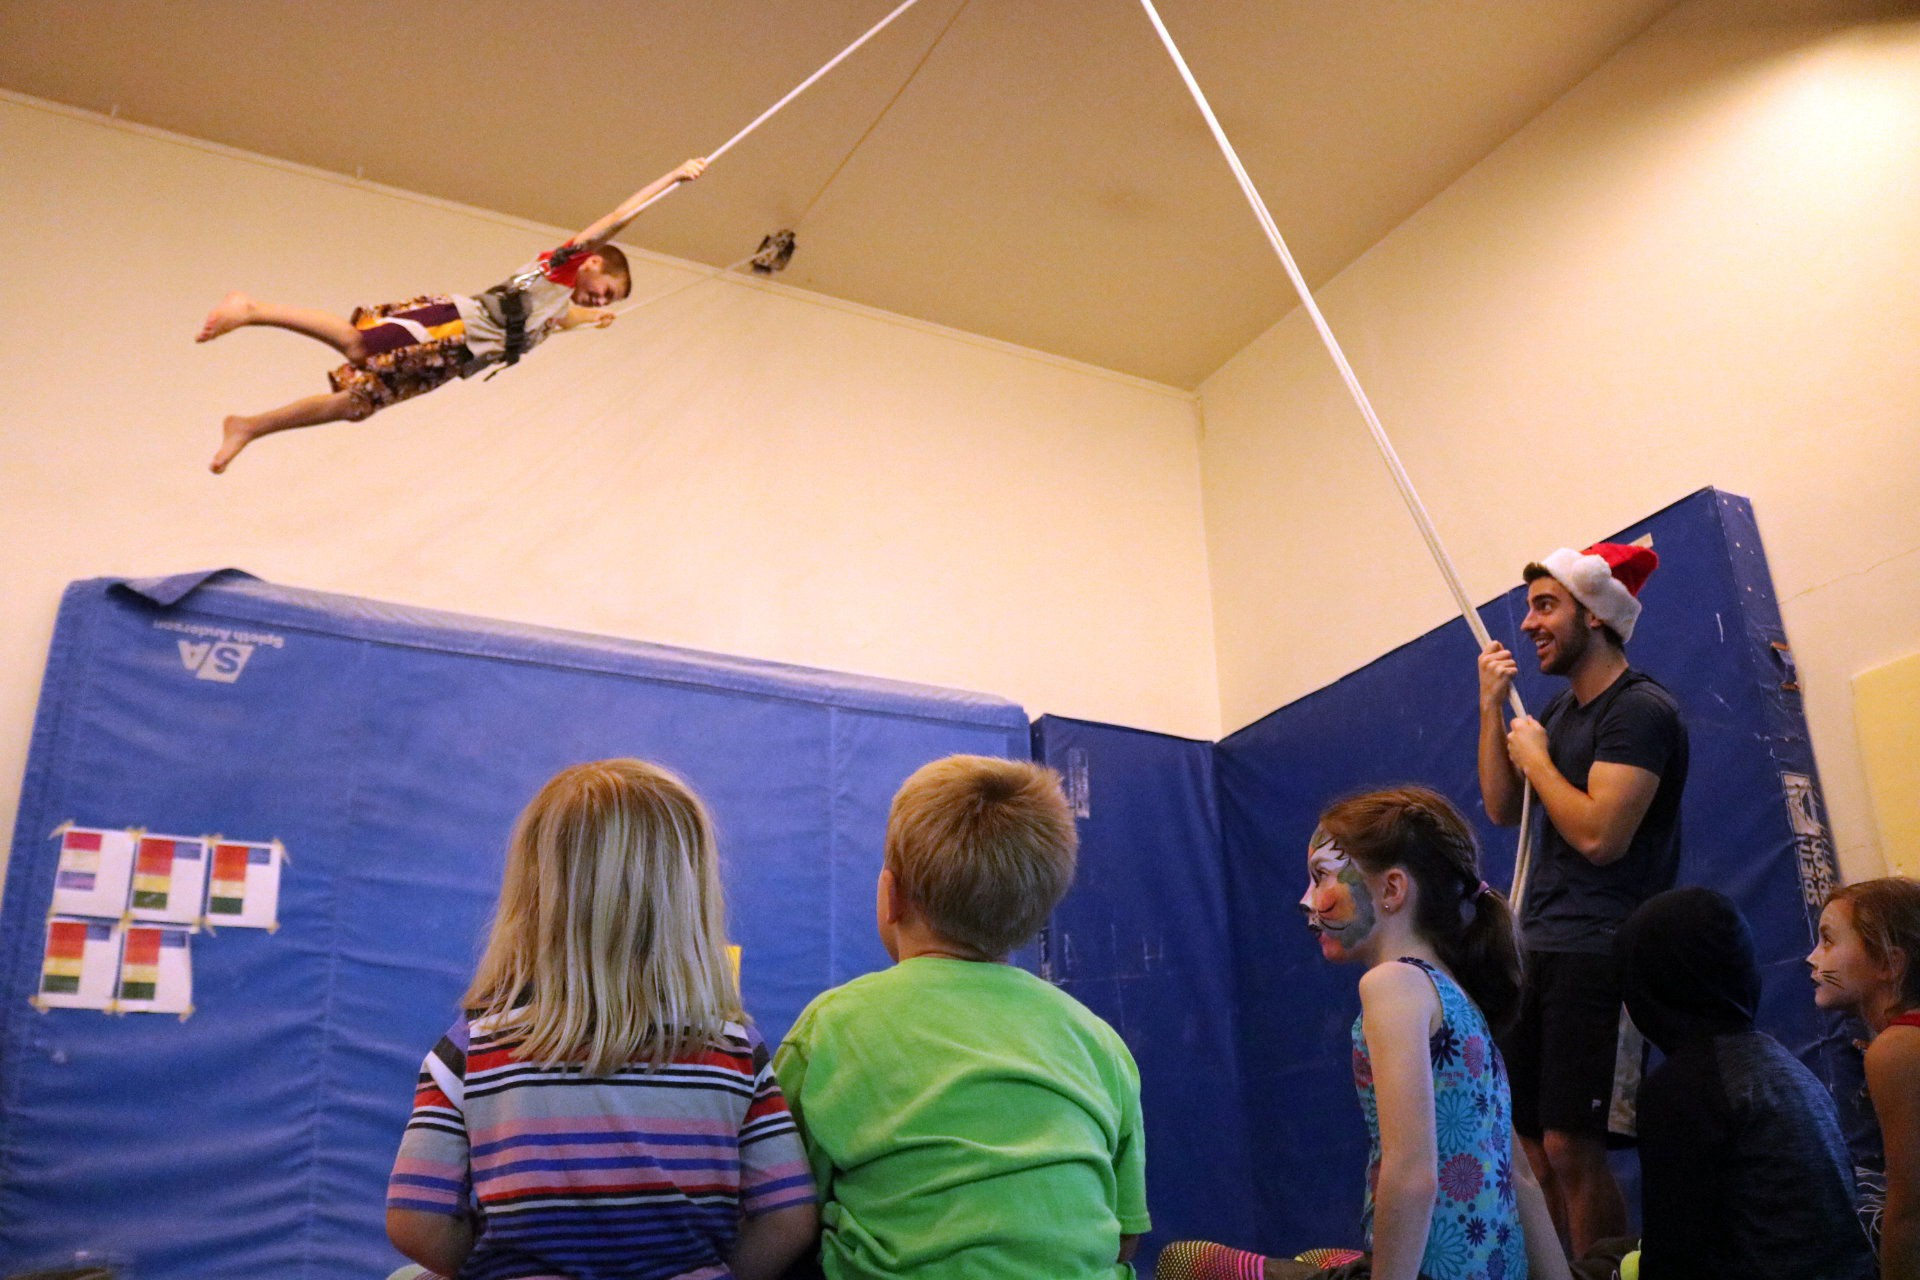 Reindeer Flight School in the spotting harness at Iron Rail Gymnastics